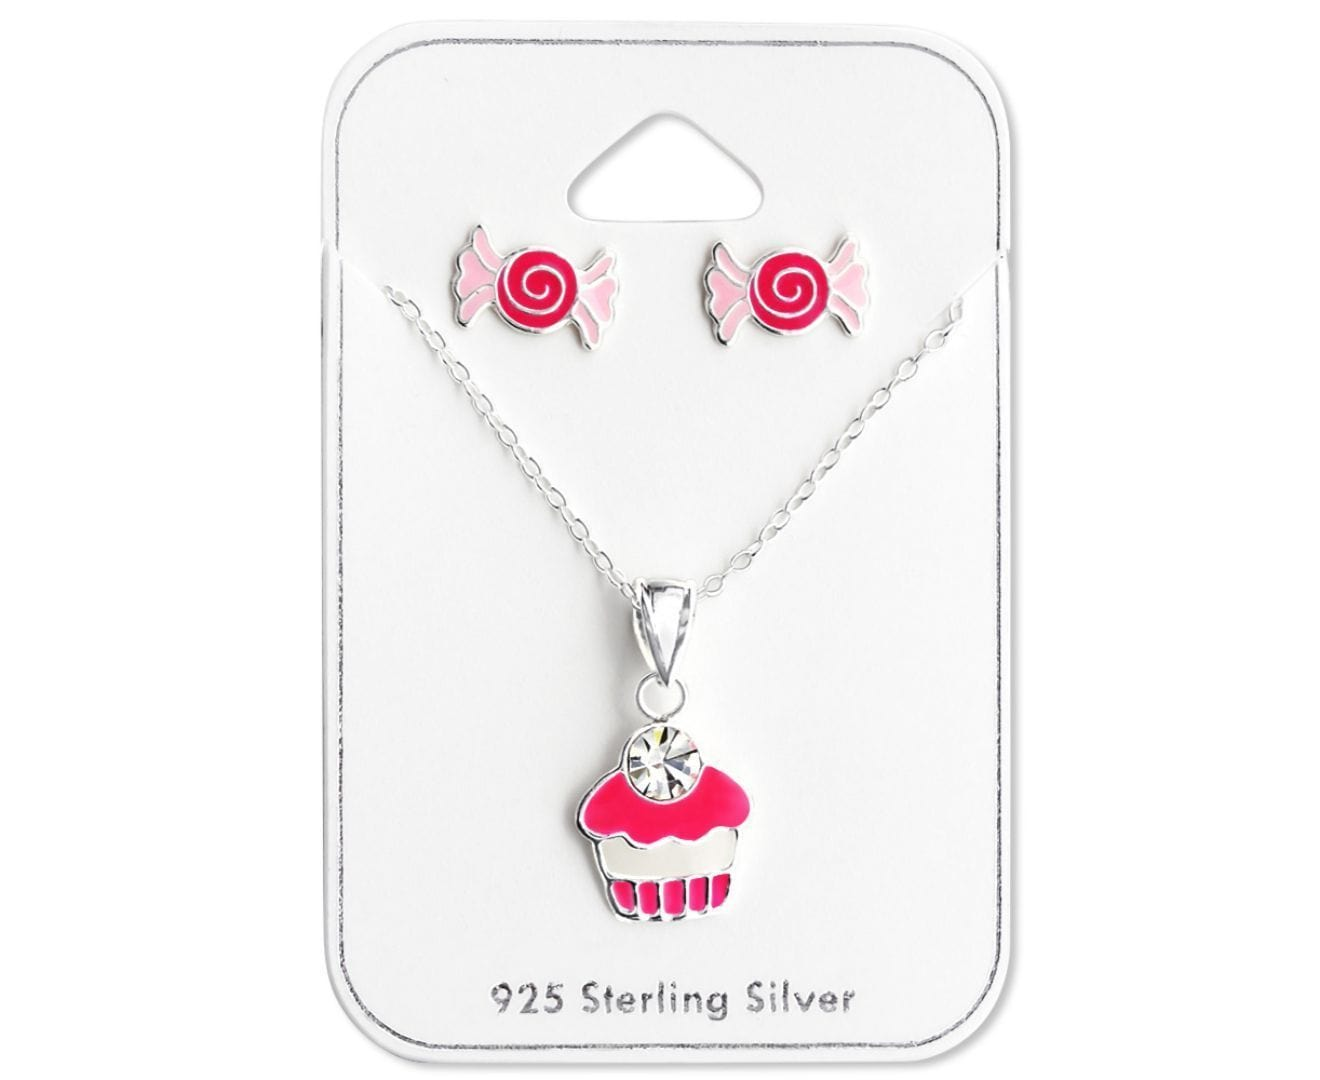 Sterling Silver Kids Candy Pendant Necklace Jewelry set